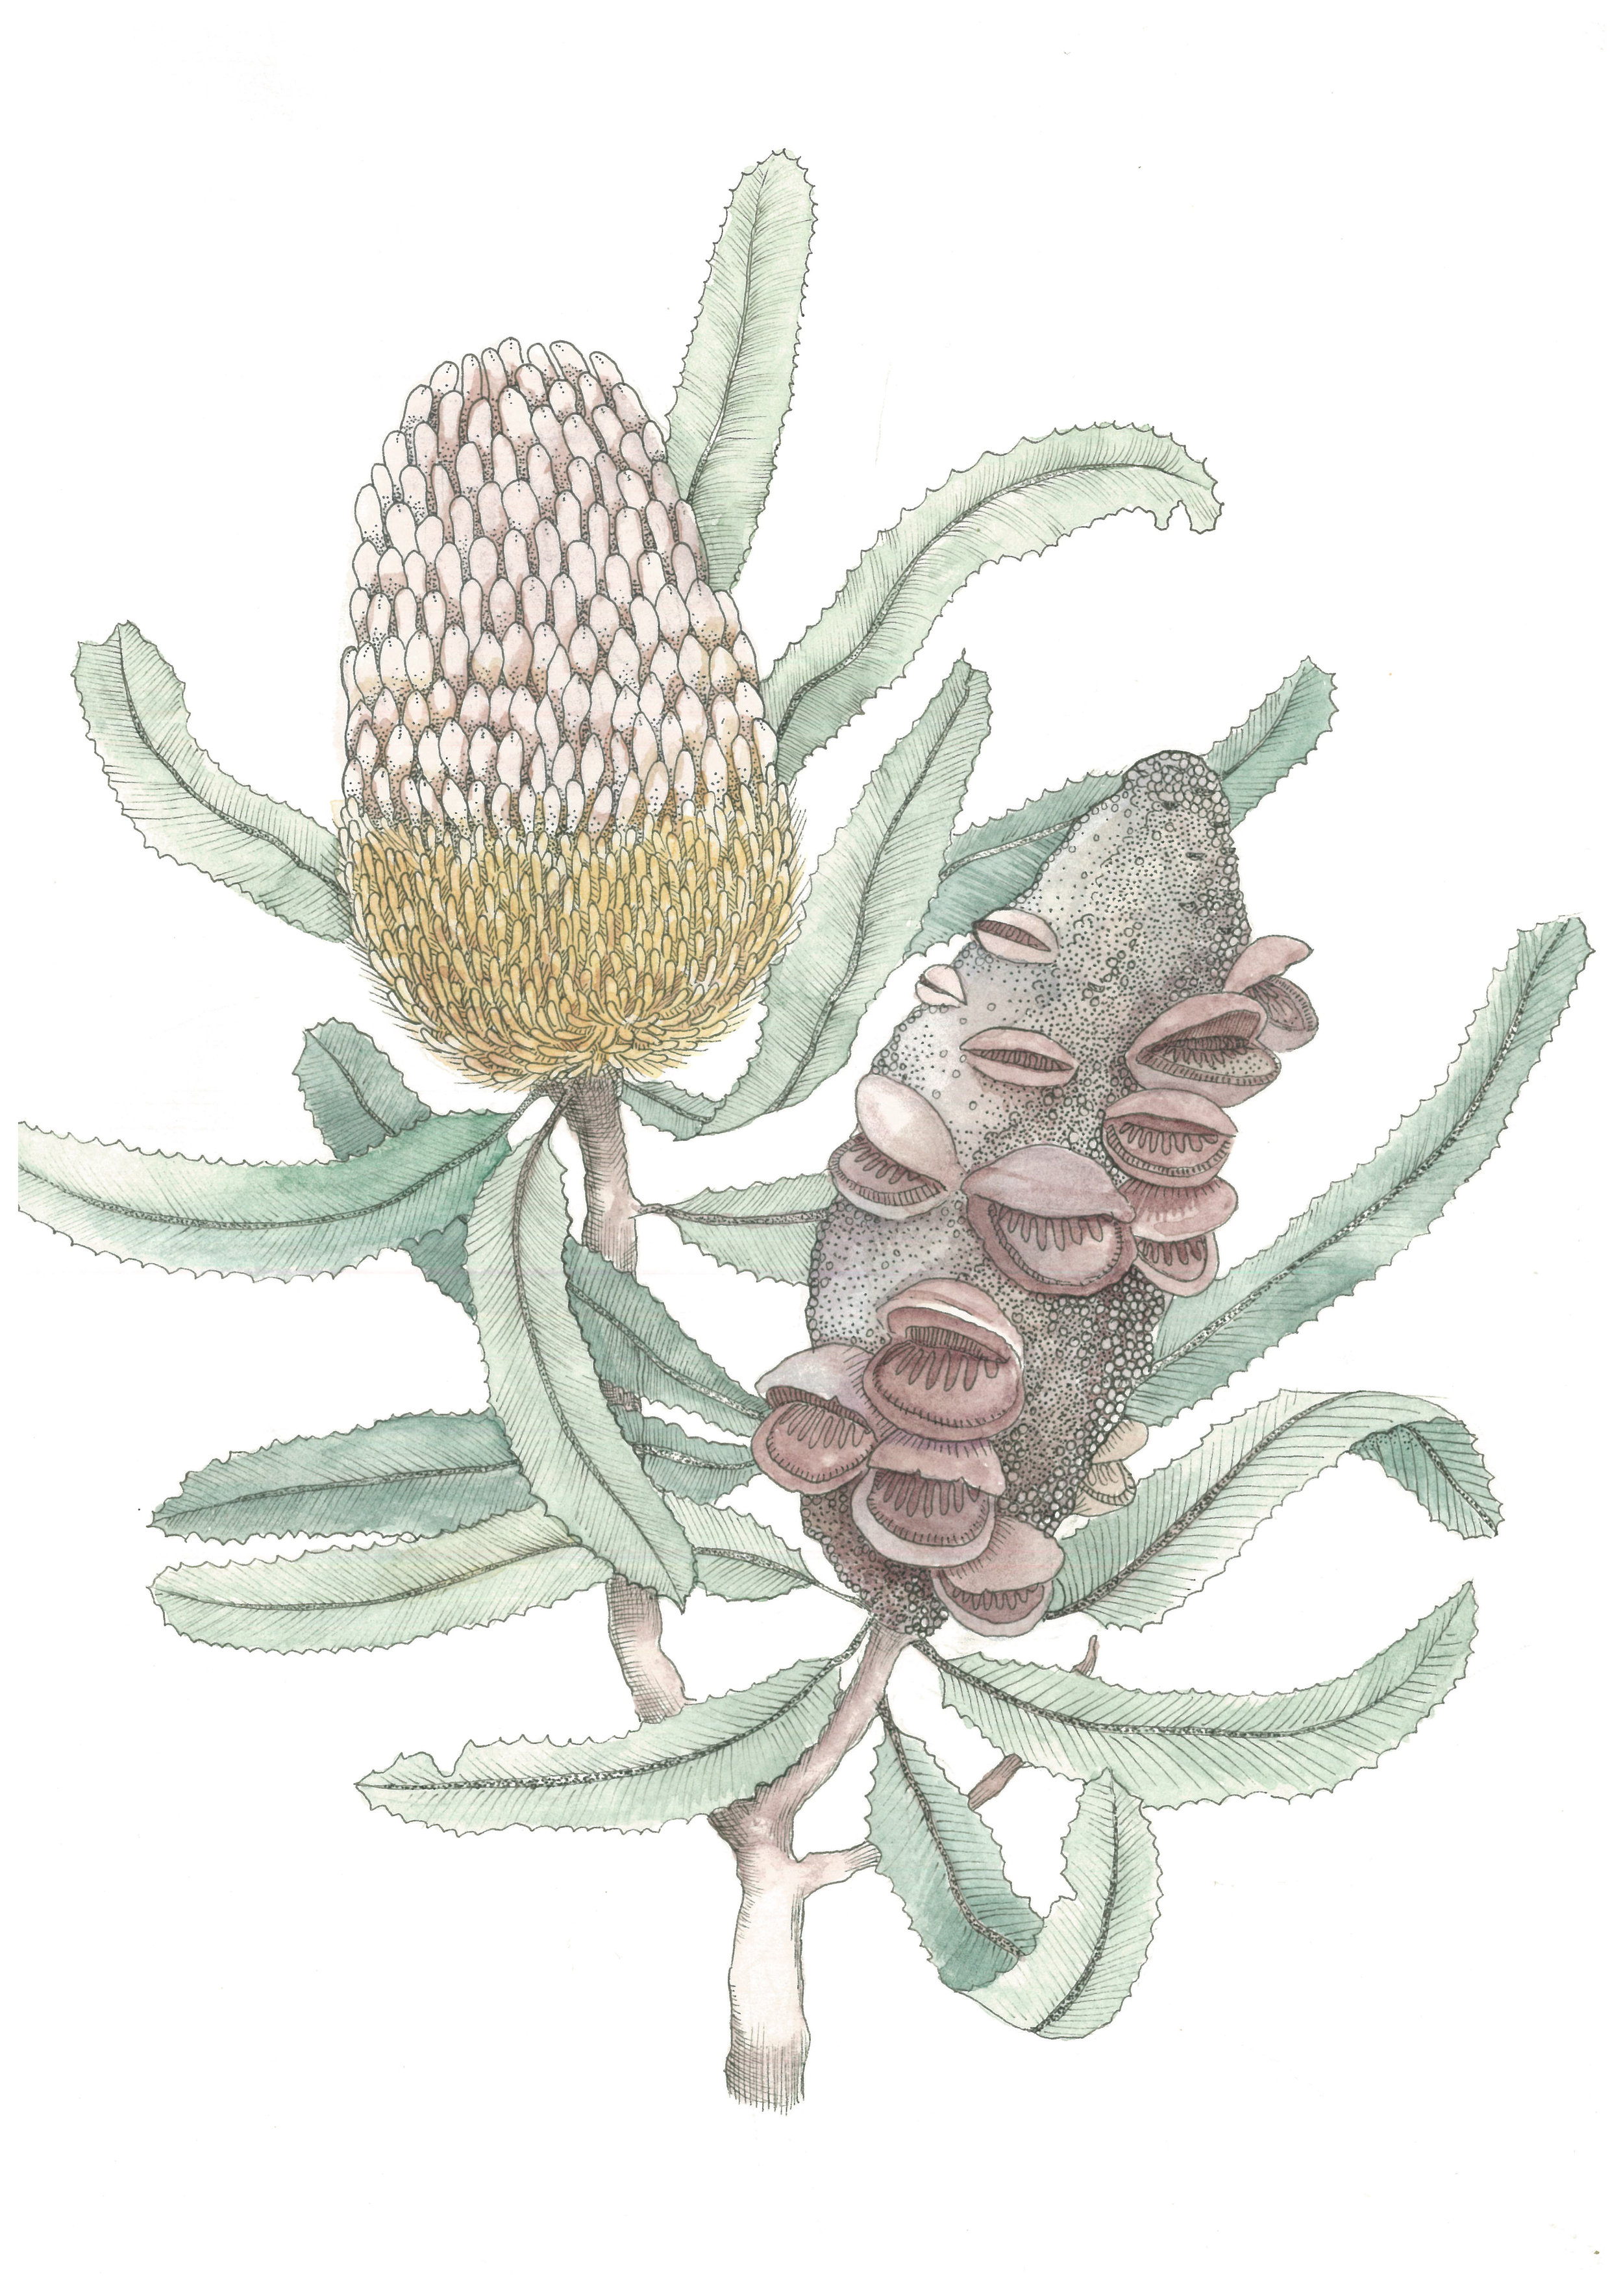 Banksia 2017 Watercolour and Ink on 100% cotton paper